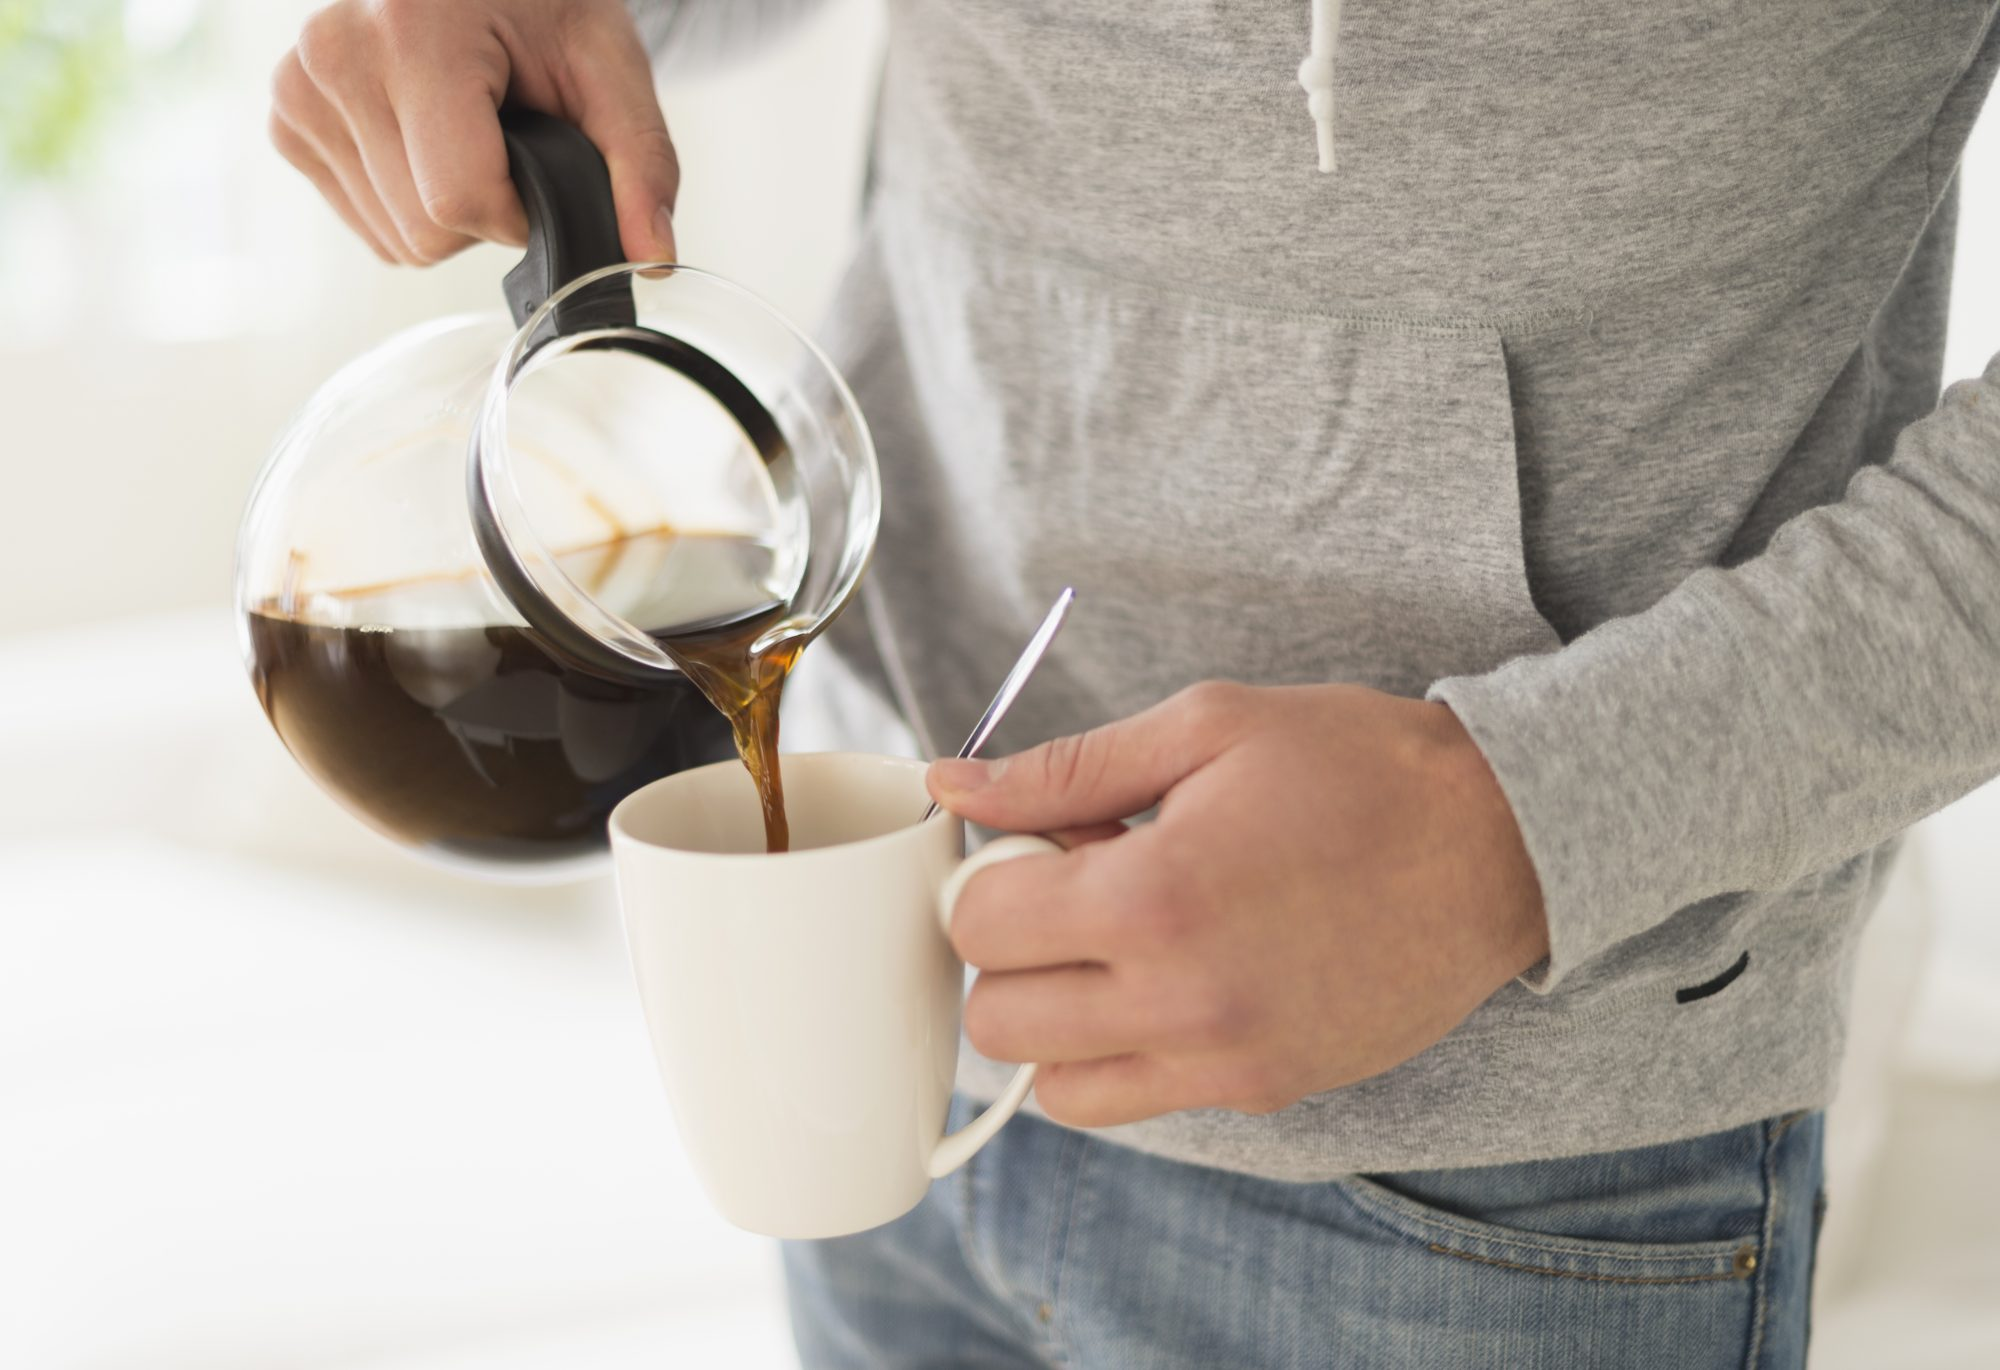 Man pouring coffee from coffeepot